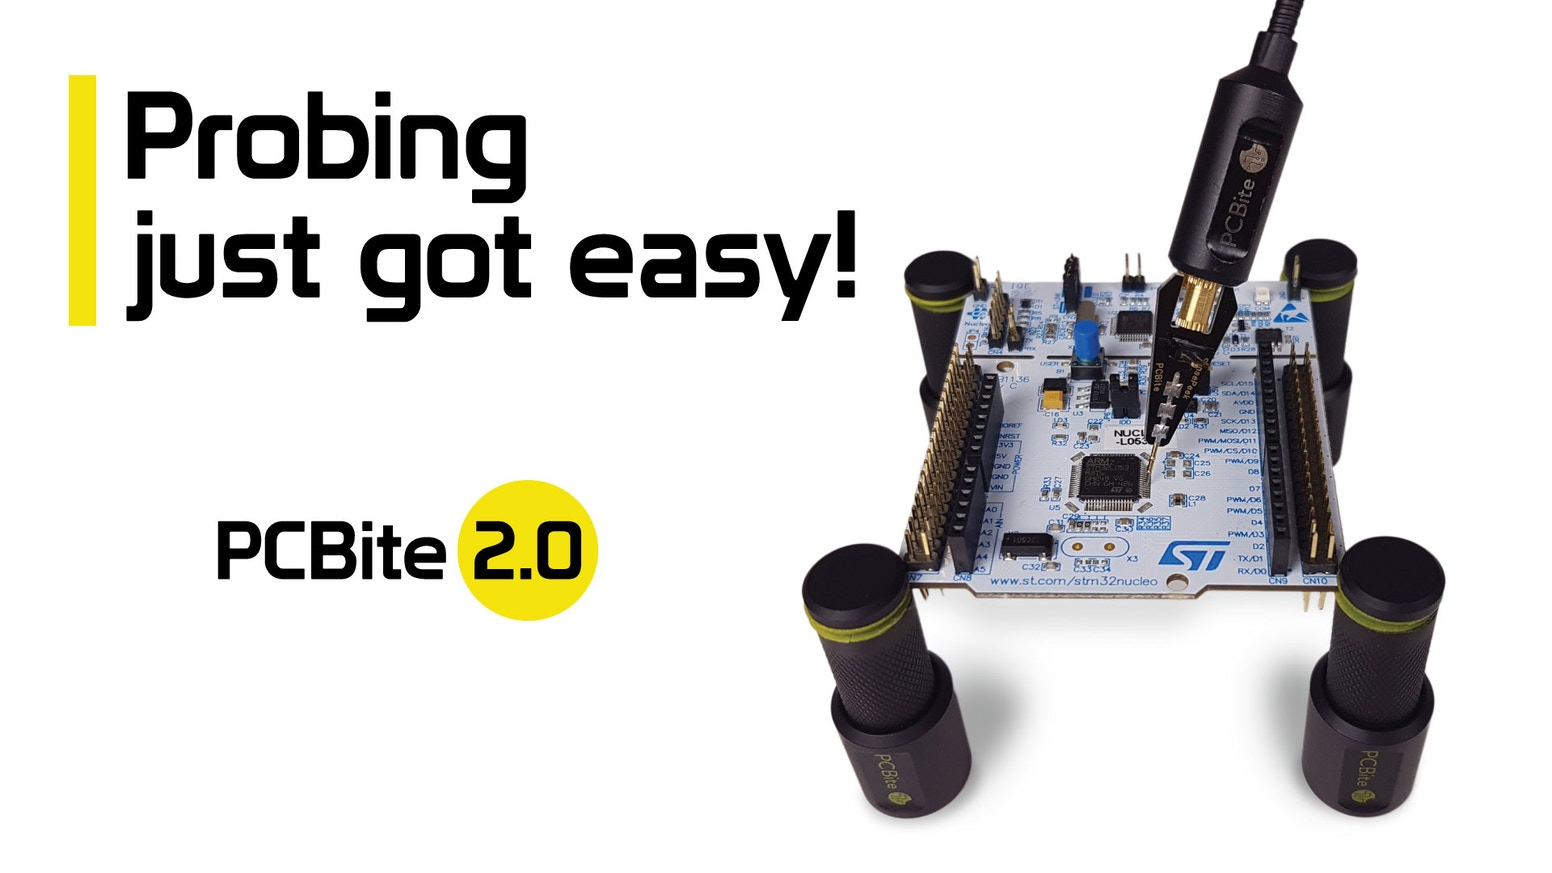 PCBite 2.0 - The hands-free & steady solution for your measurements